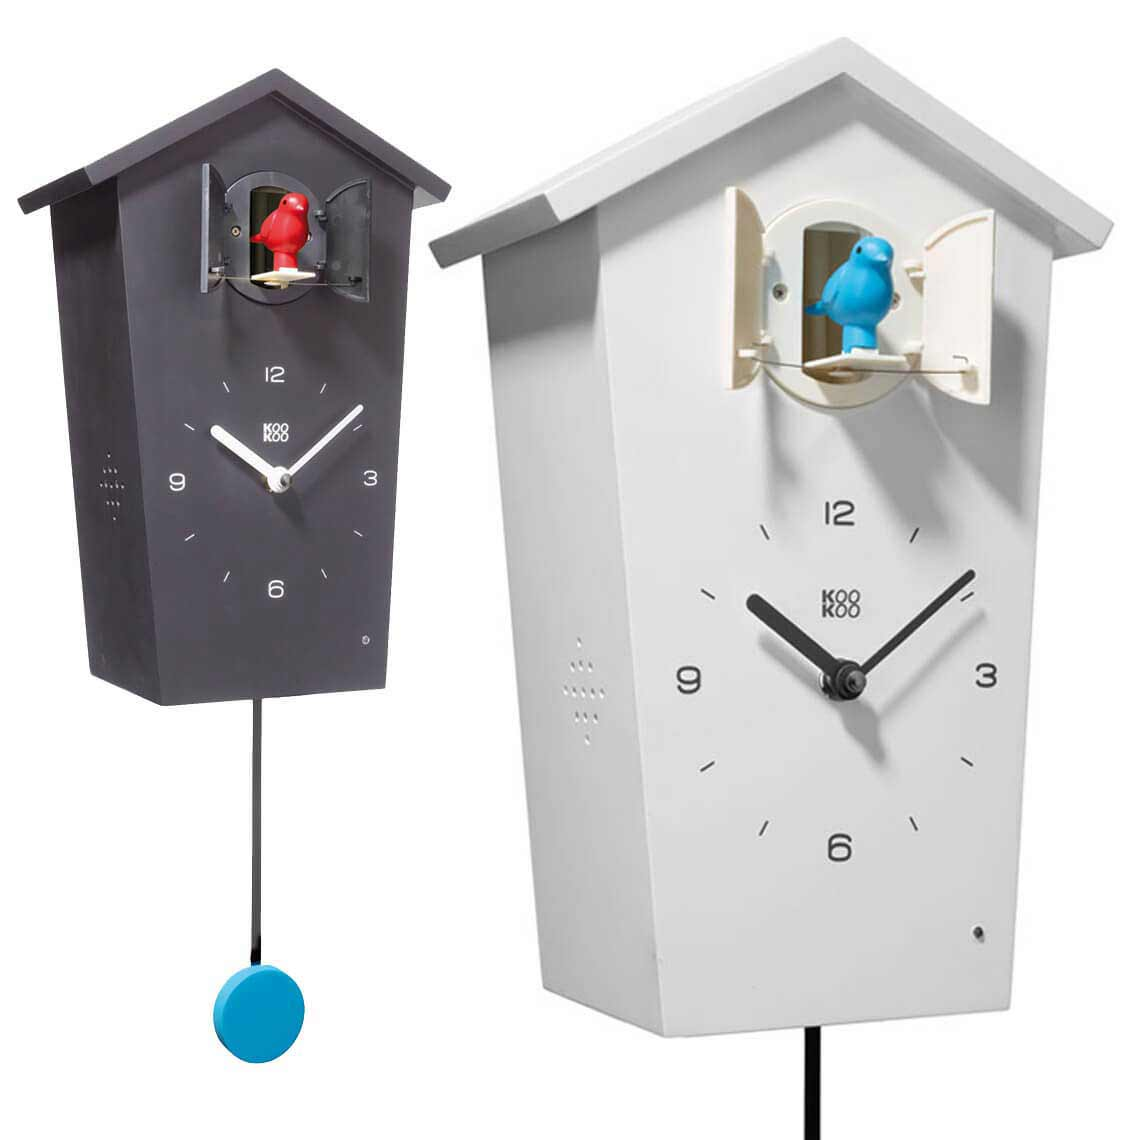 Cuckoo clock BirdHouse in black or white by KooKoo | The Design Gift Shop